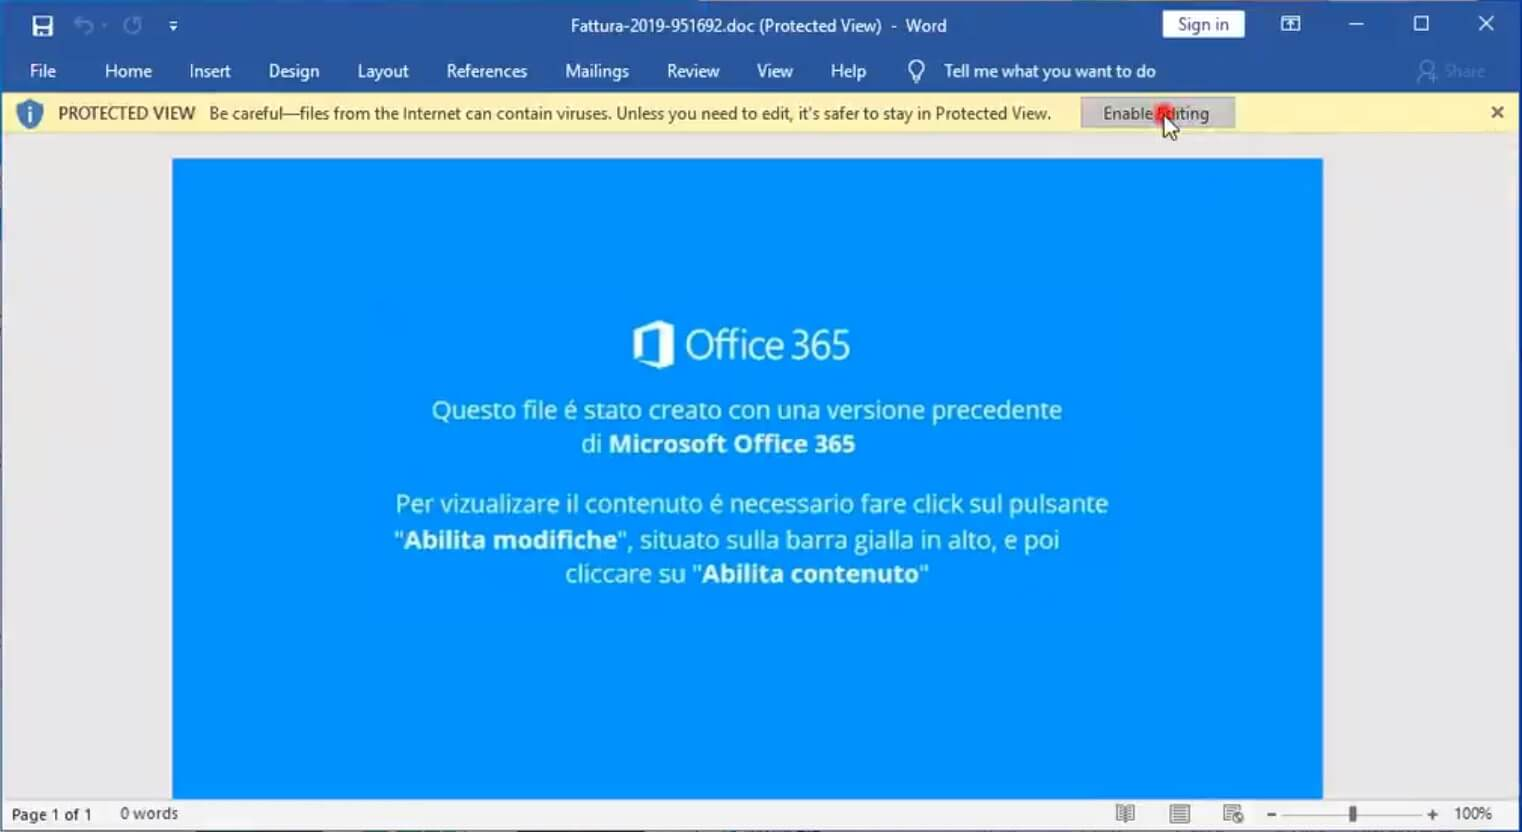 document infecté Fattura-2019-951692 active ftcode ransomware